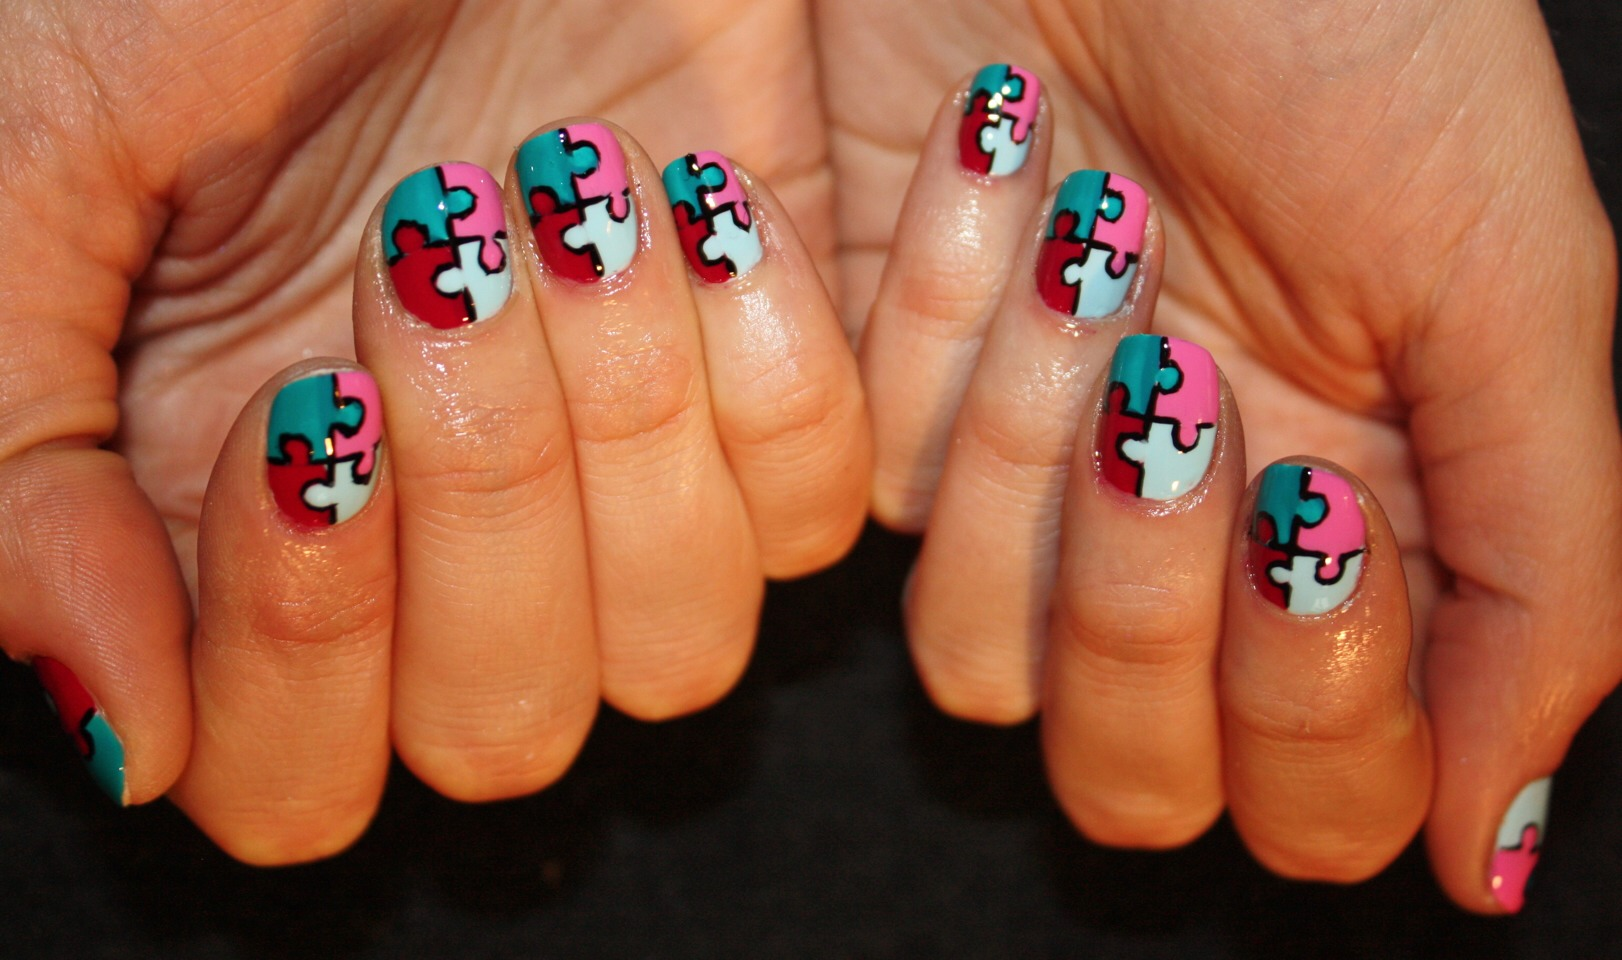 You could even outline with a nail art pen!